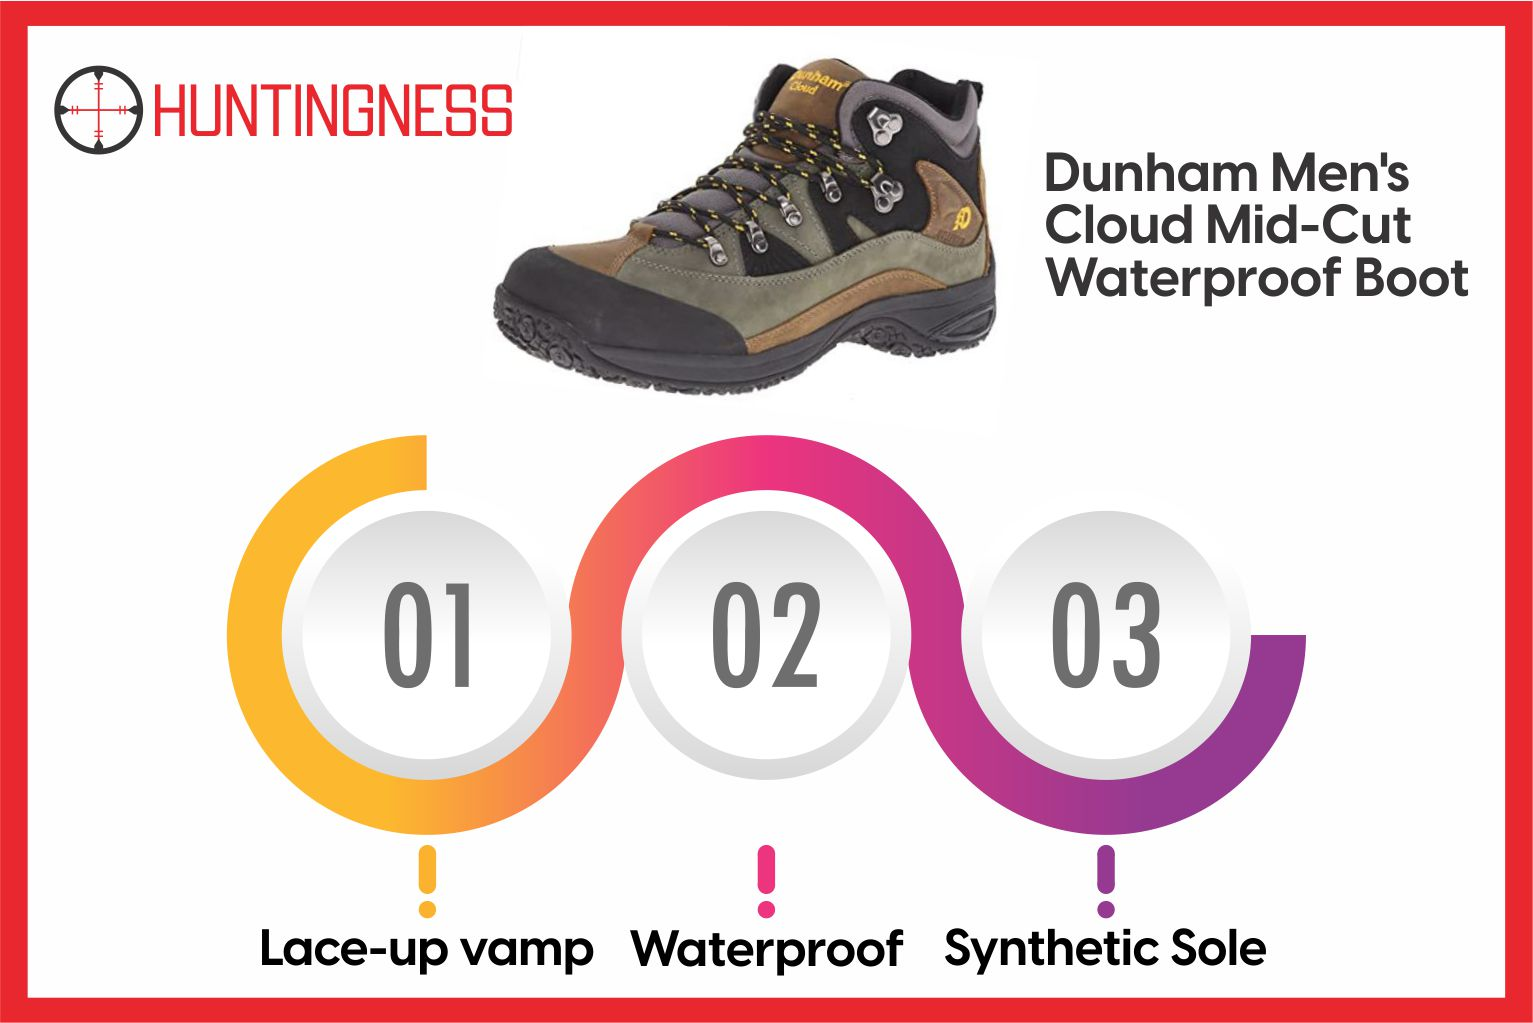 Dunham Men's Cloud - Mid-Cut Waterproof Boots Infographics